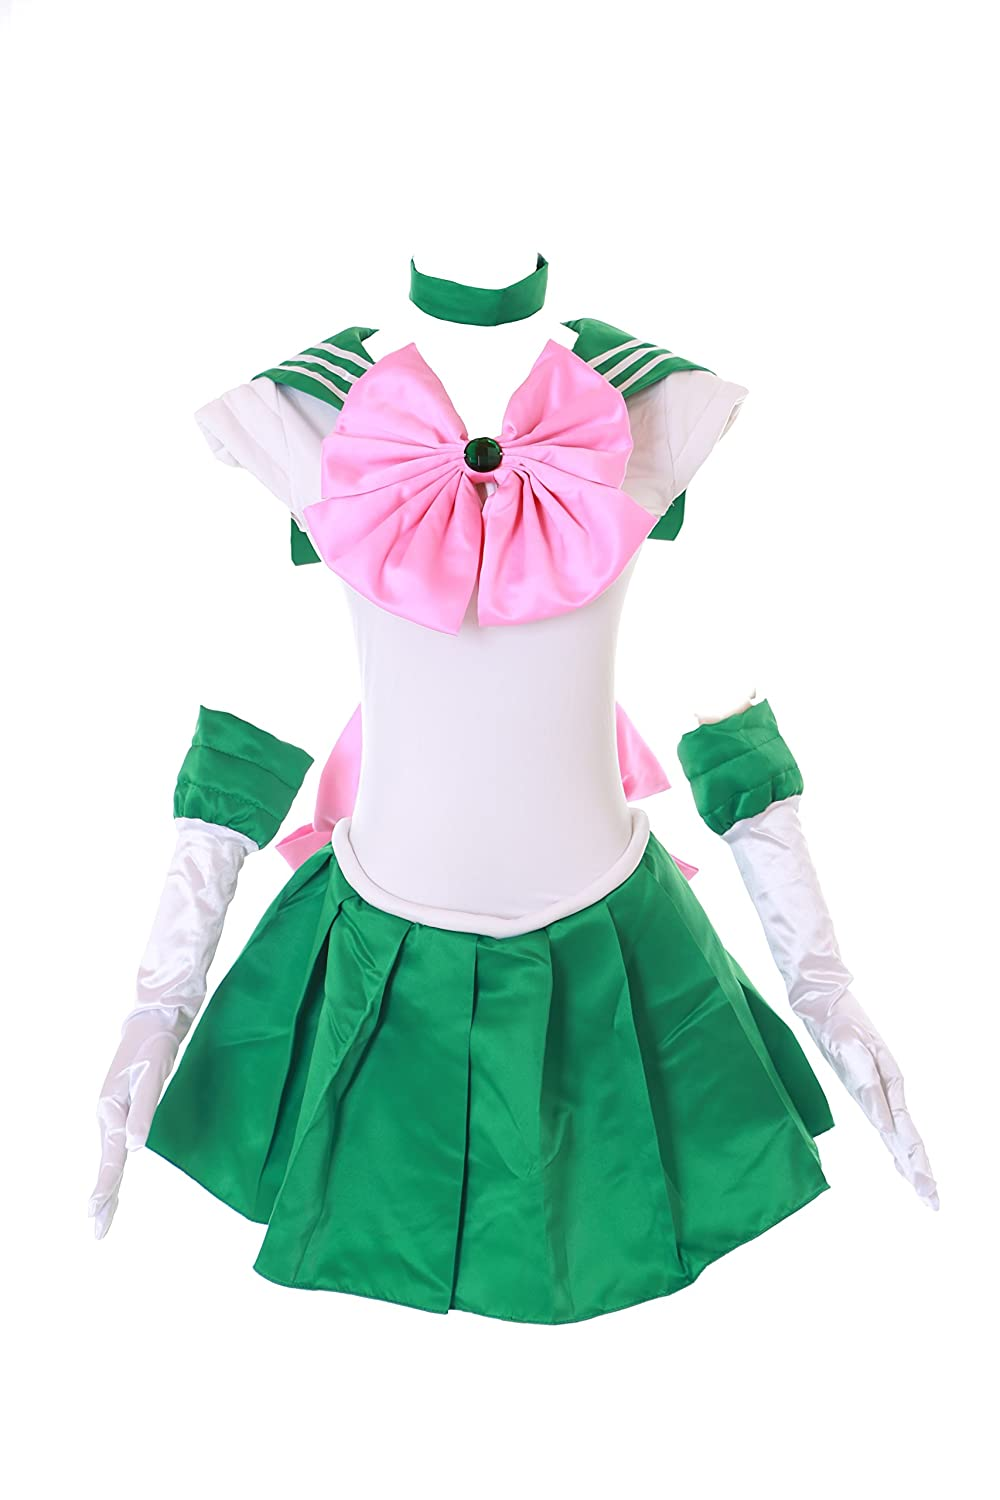 H-6002 Jupiter Jupiter Jupiter Crystal Sailor Moon Grün Weiß Cosplay Kleid Handschuhe Set dress Kostüm costume Kawaii-Story ed757f